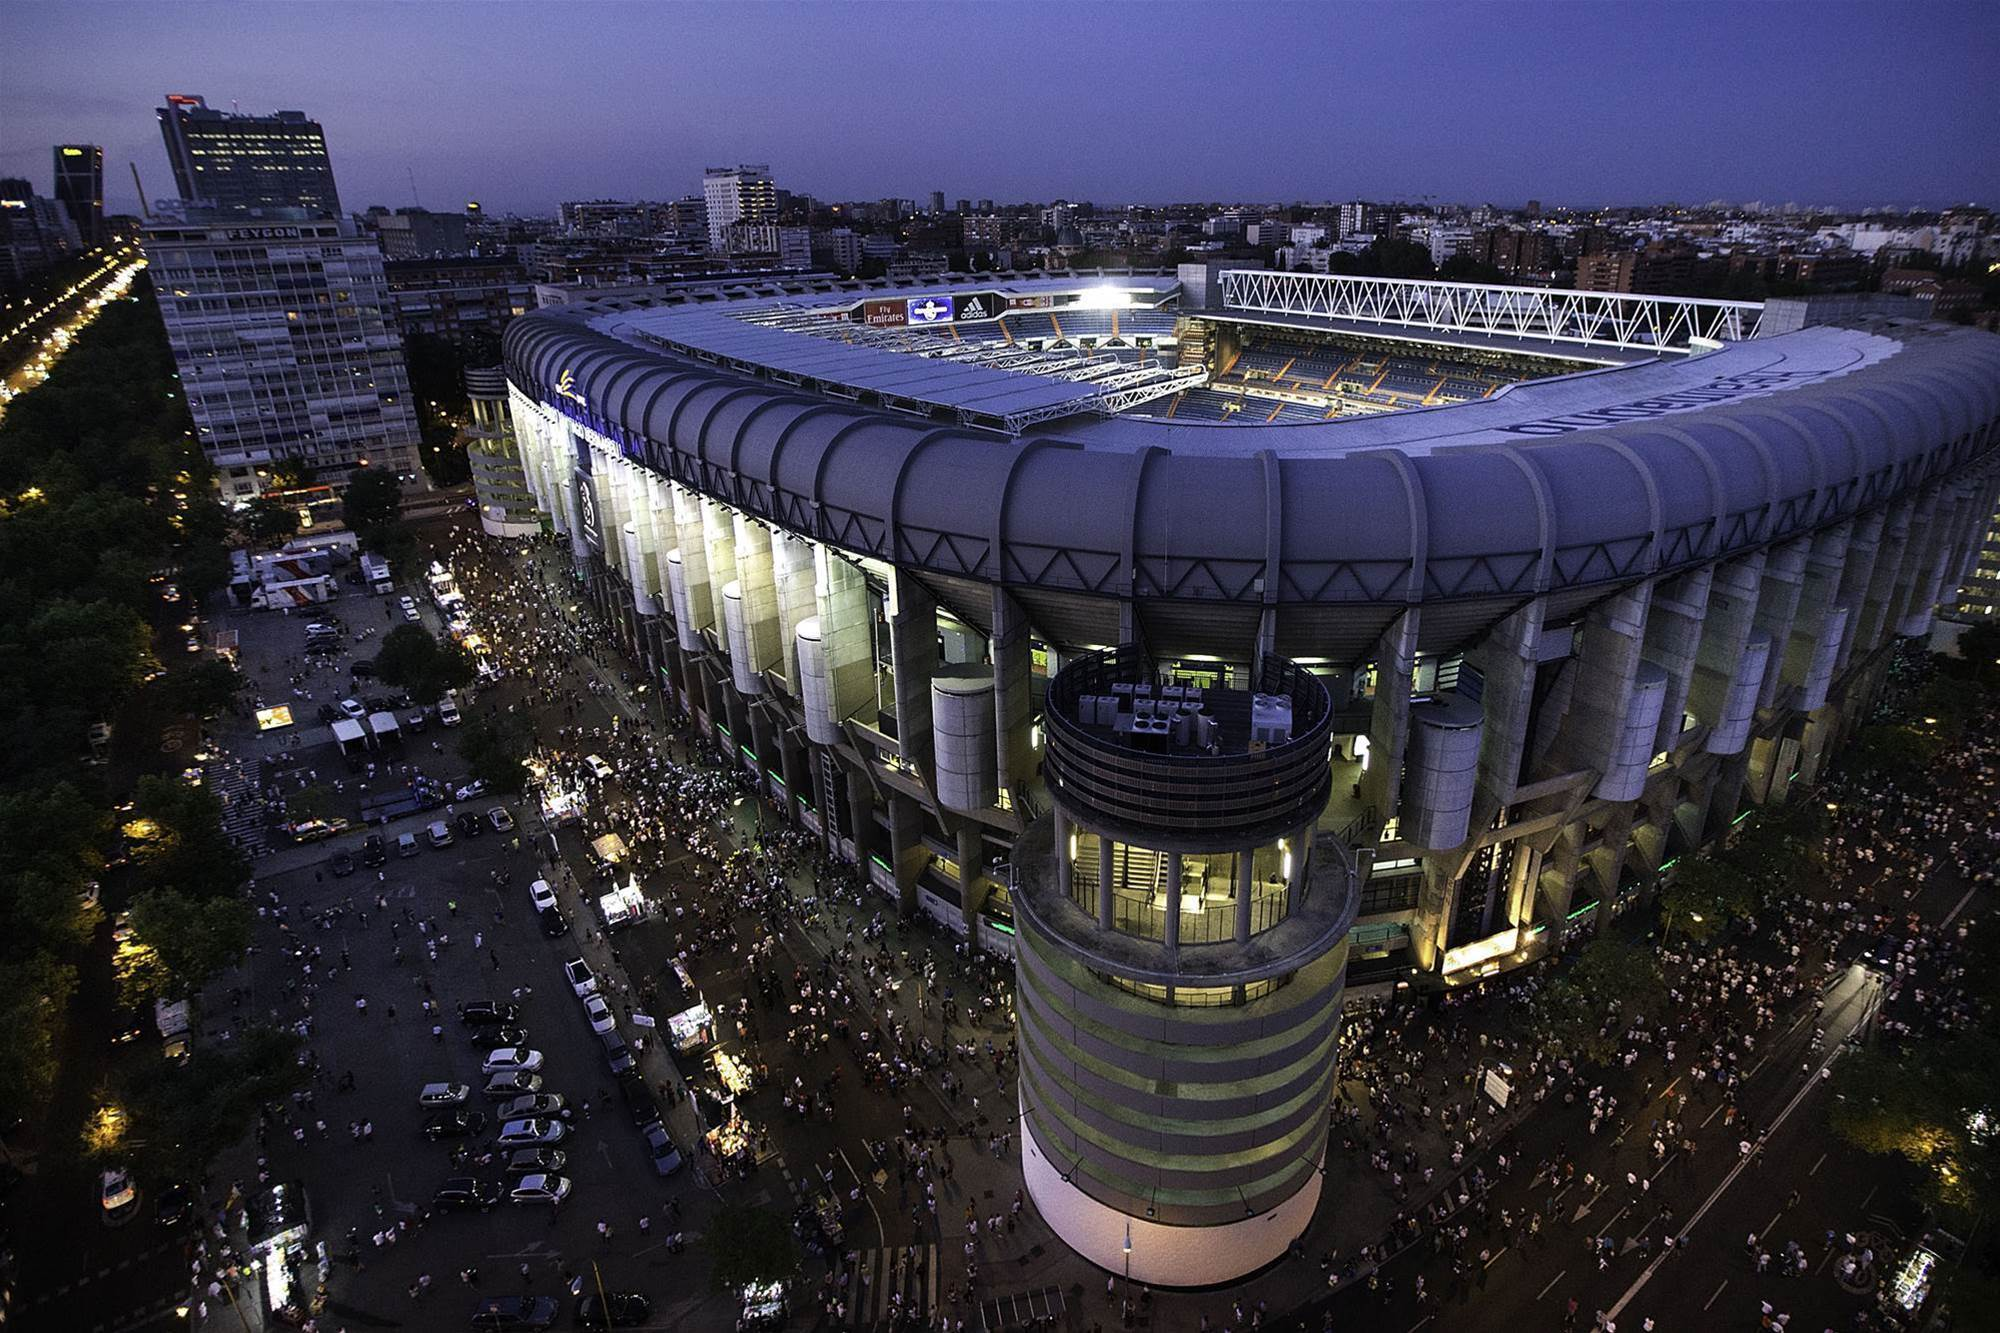 Copa Libertadores final moved 6000 miles away to Bernabeu